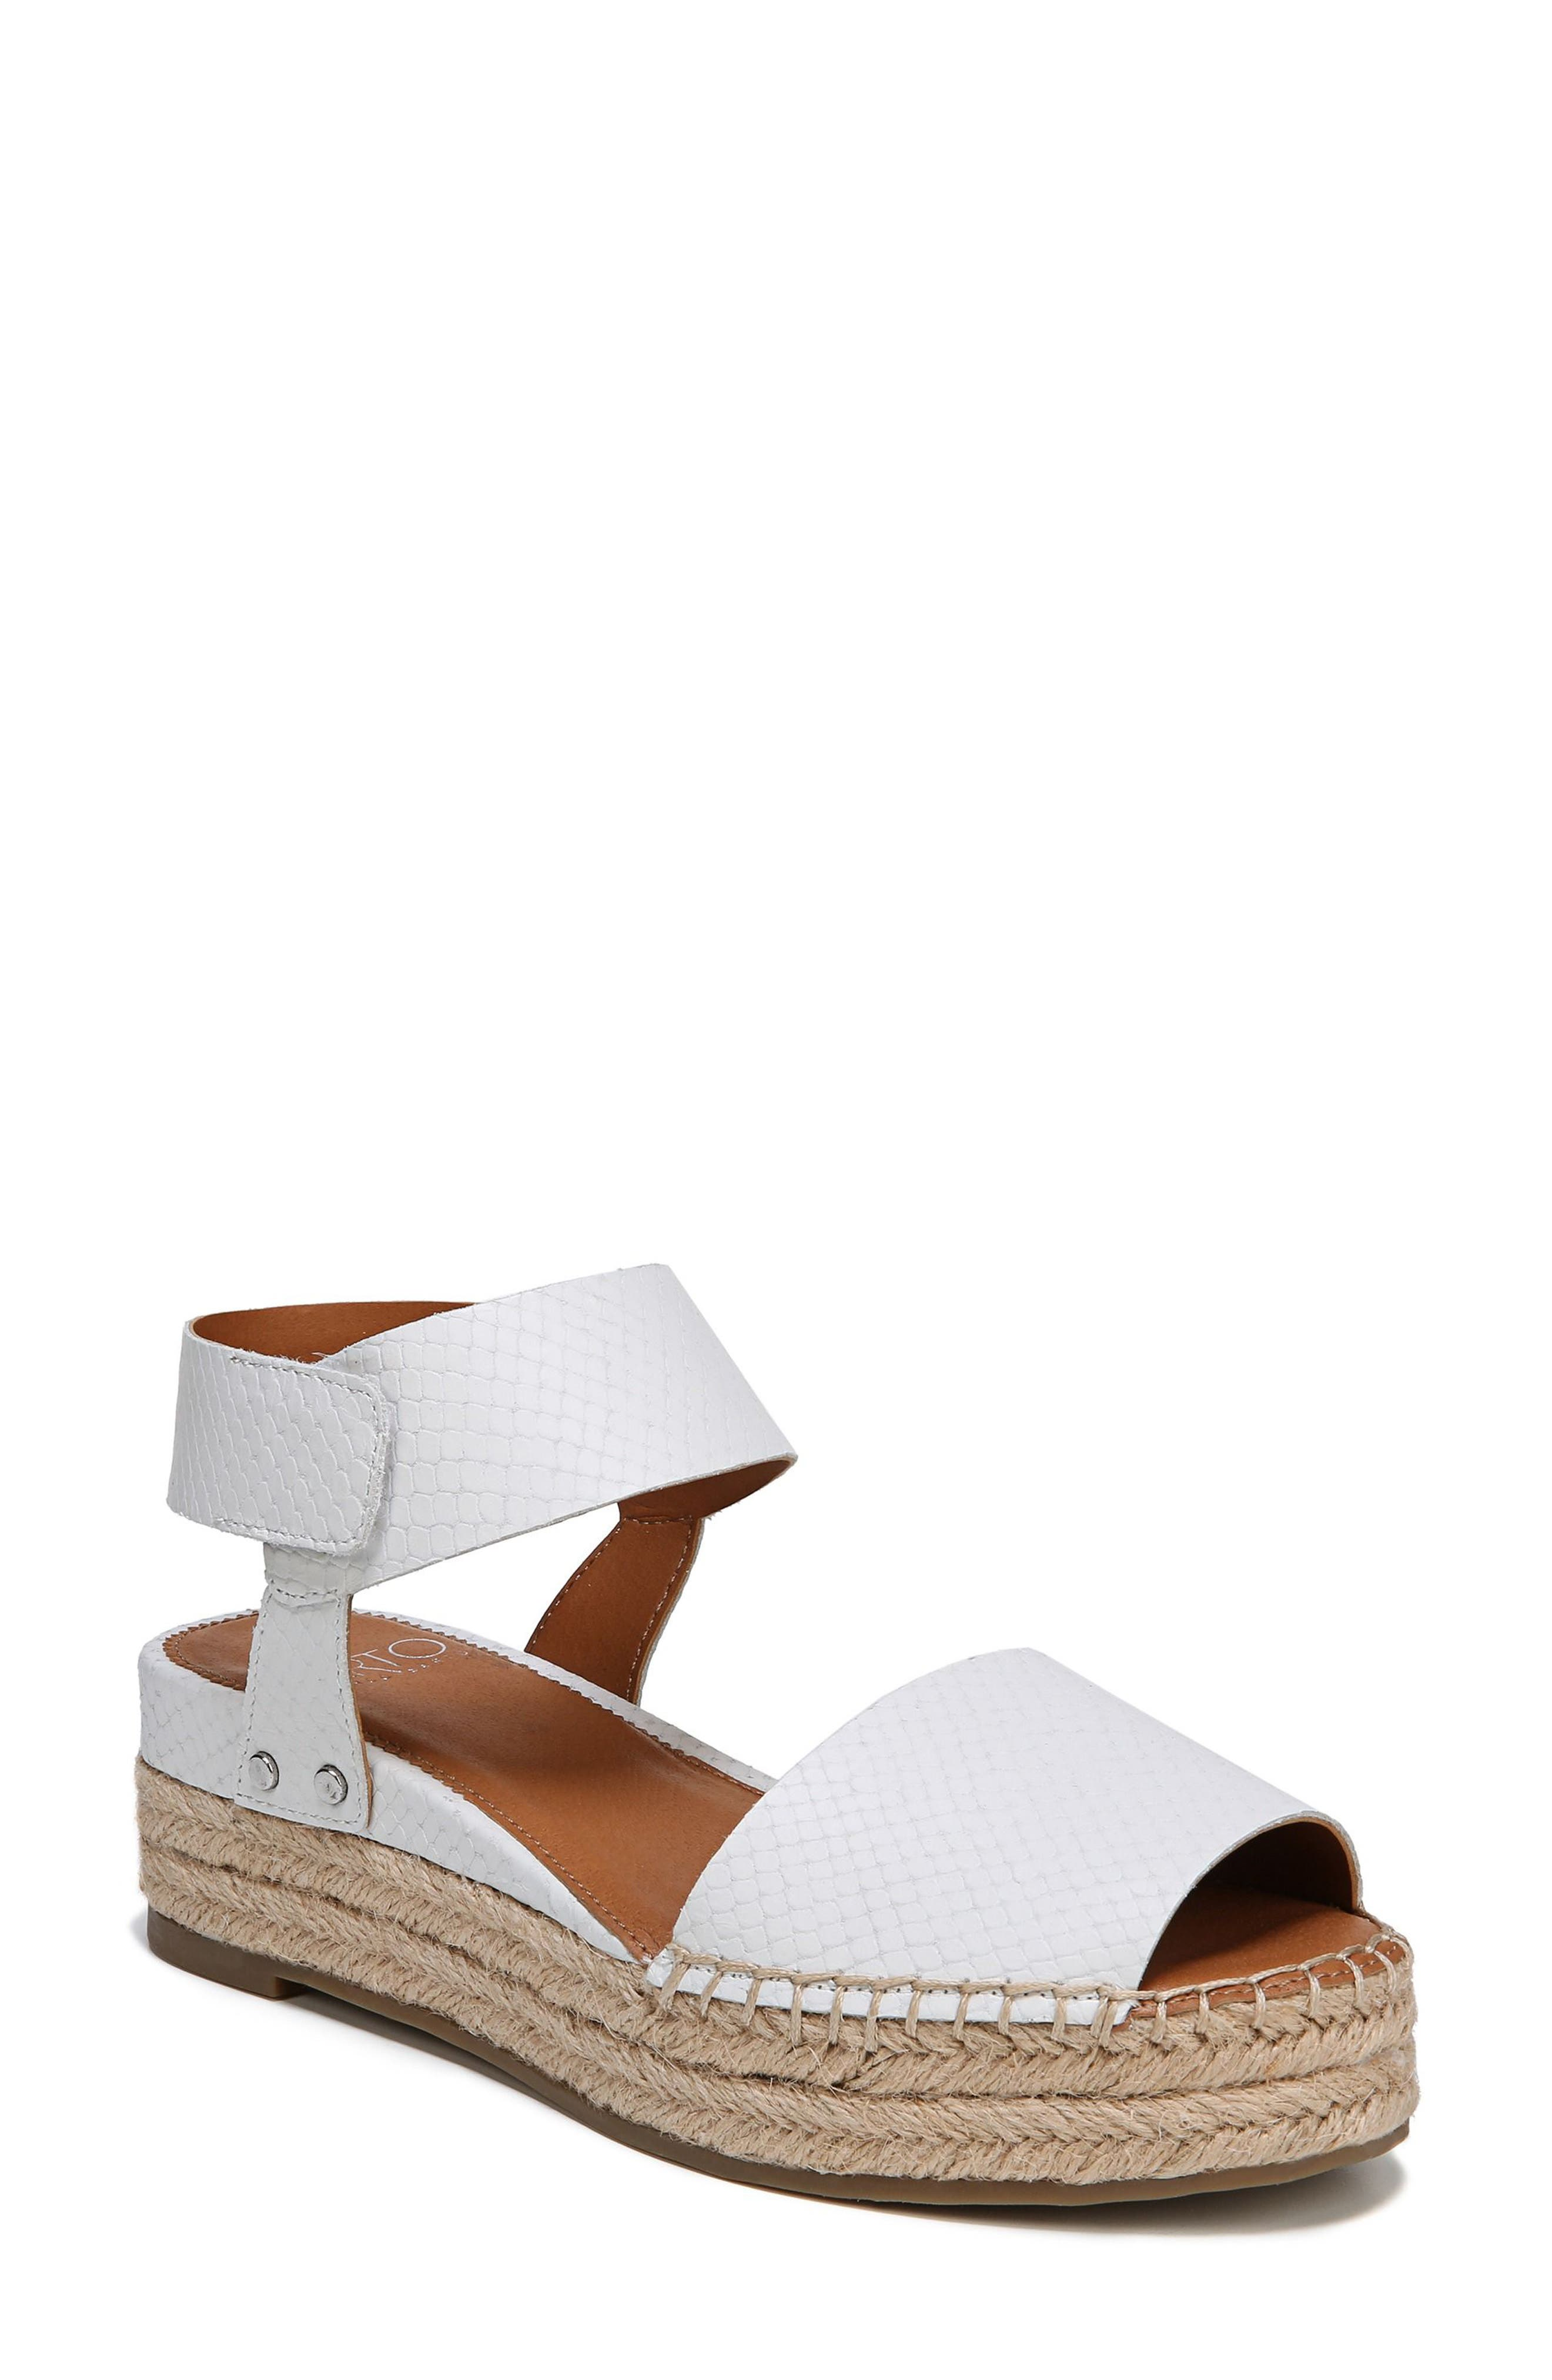 Oak Platform Wedge Espadrille,                             Main thumbnail 1, color,                             Blanca Printed Leather